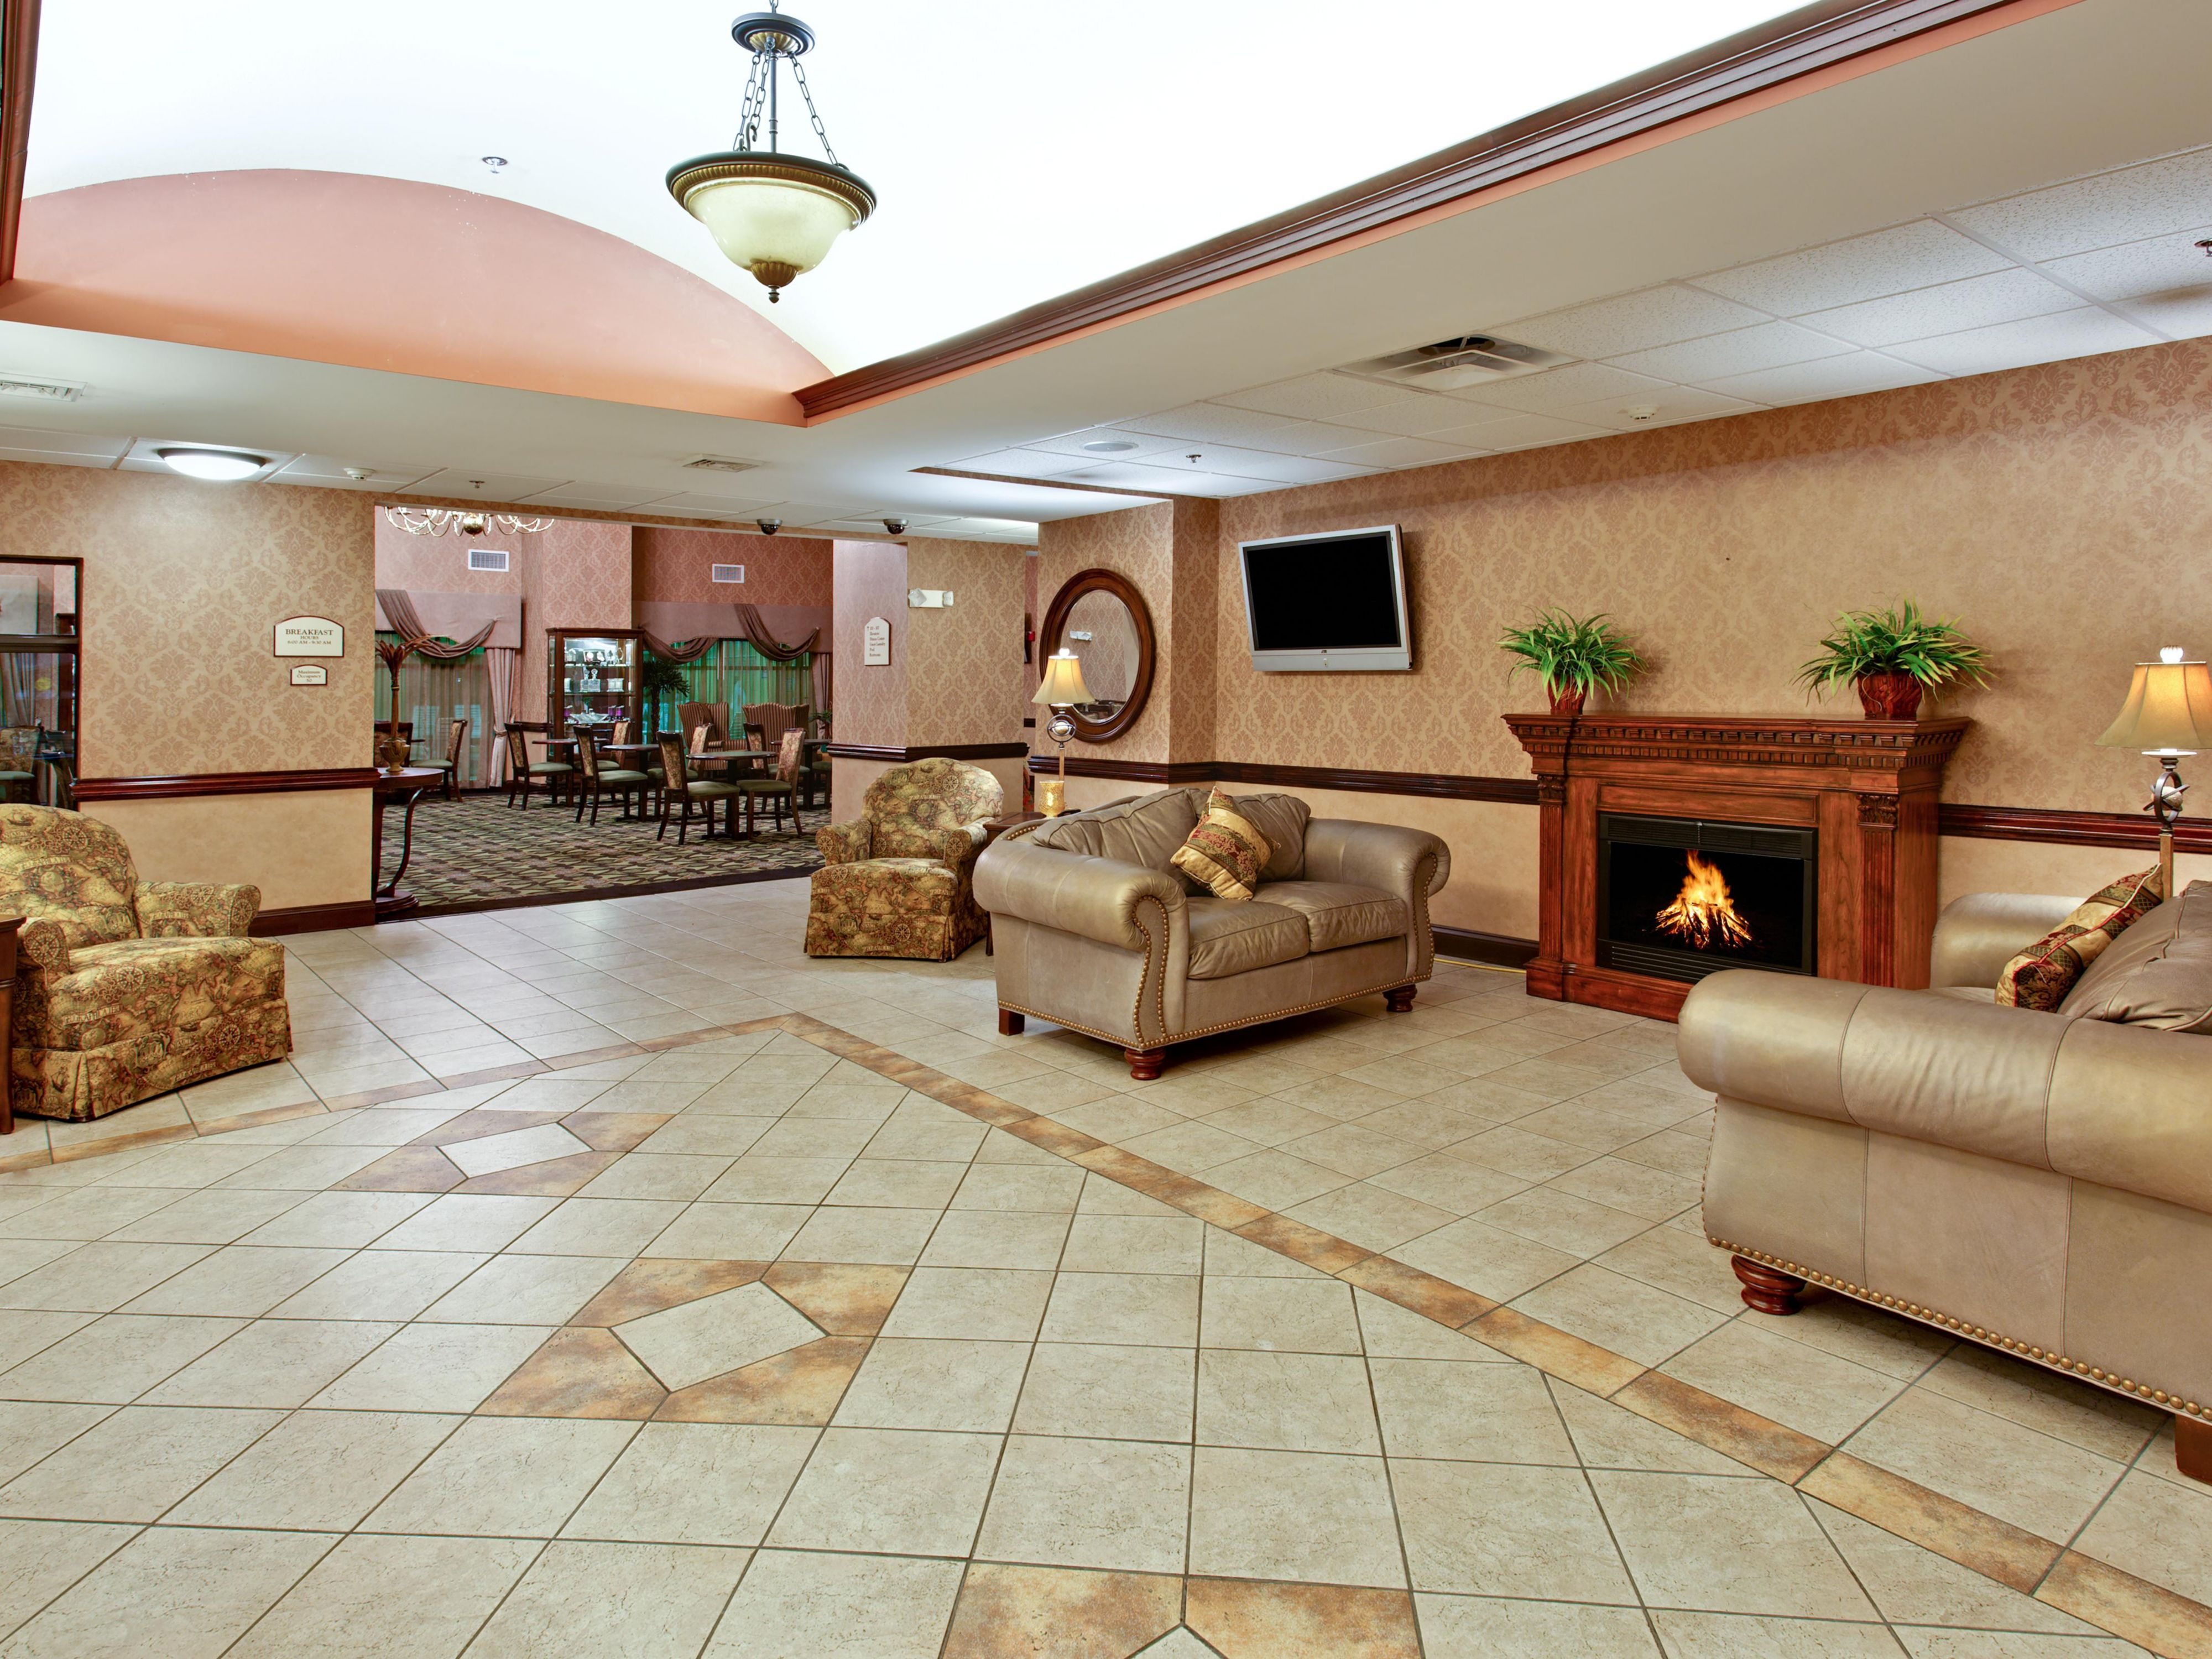 Hotel Lobby/Reception Area